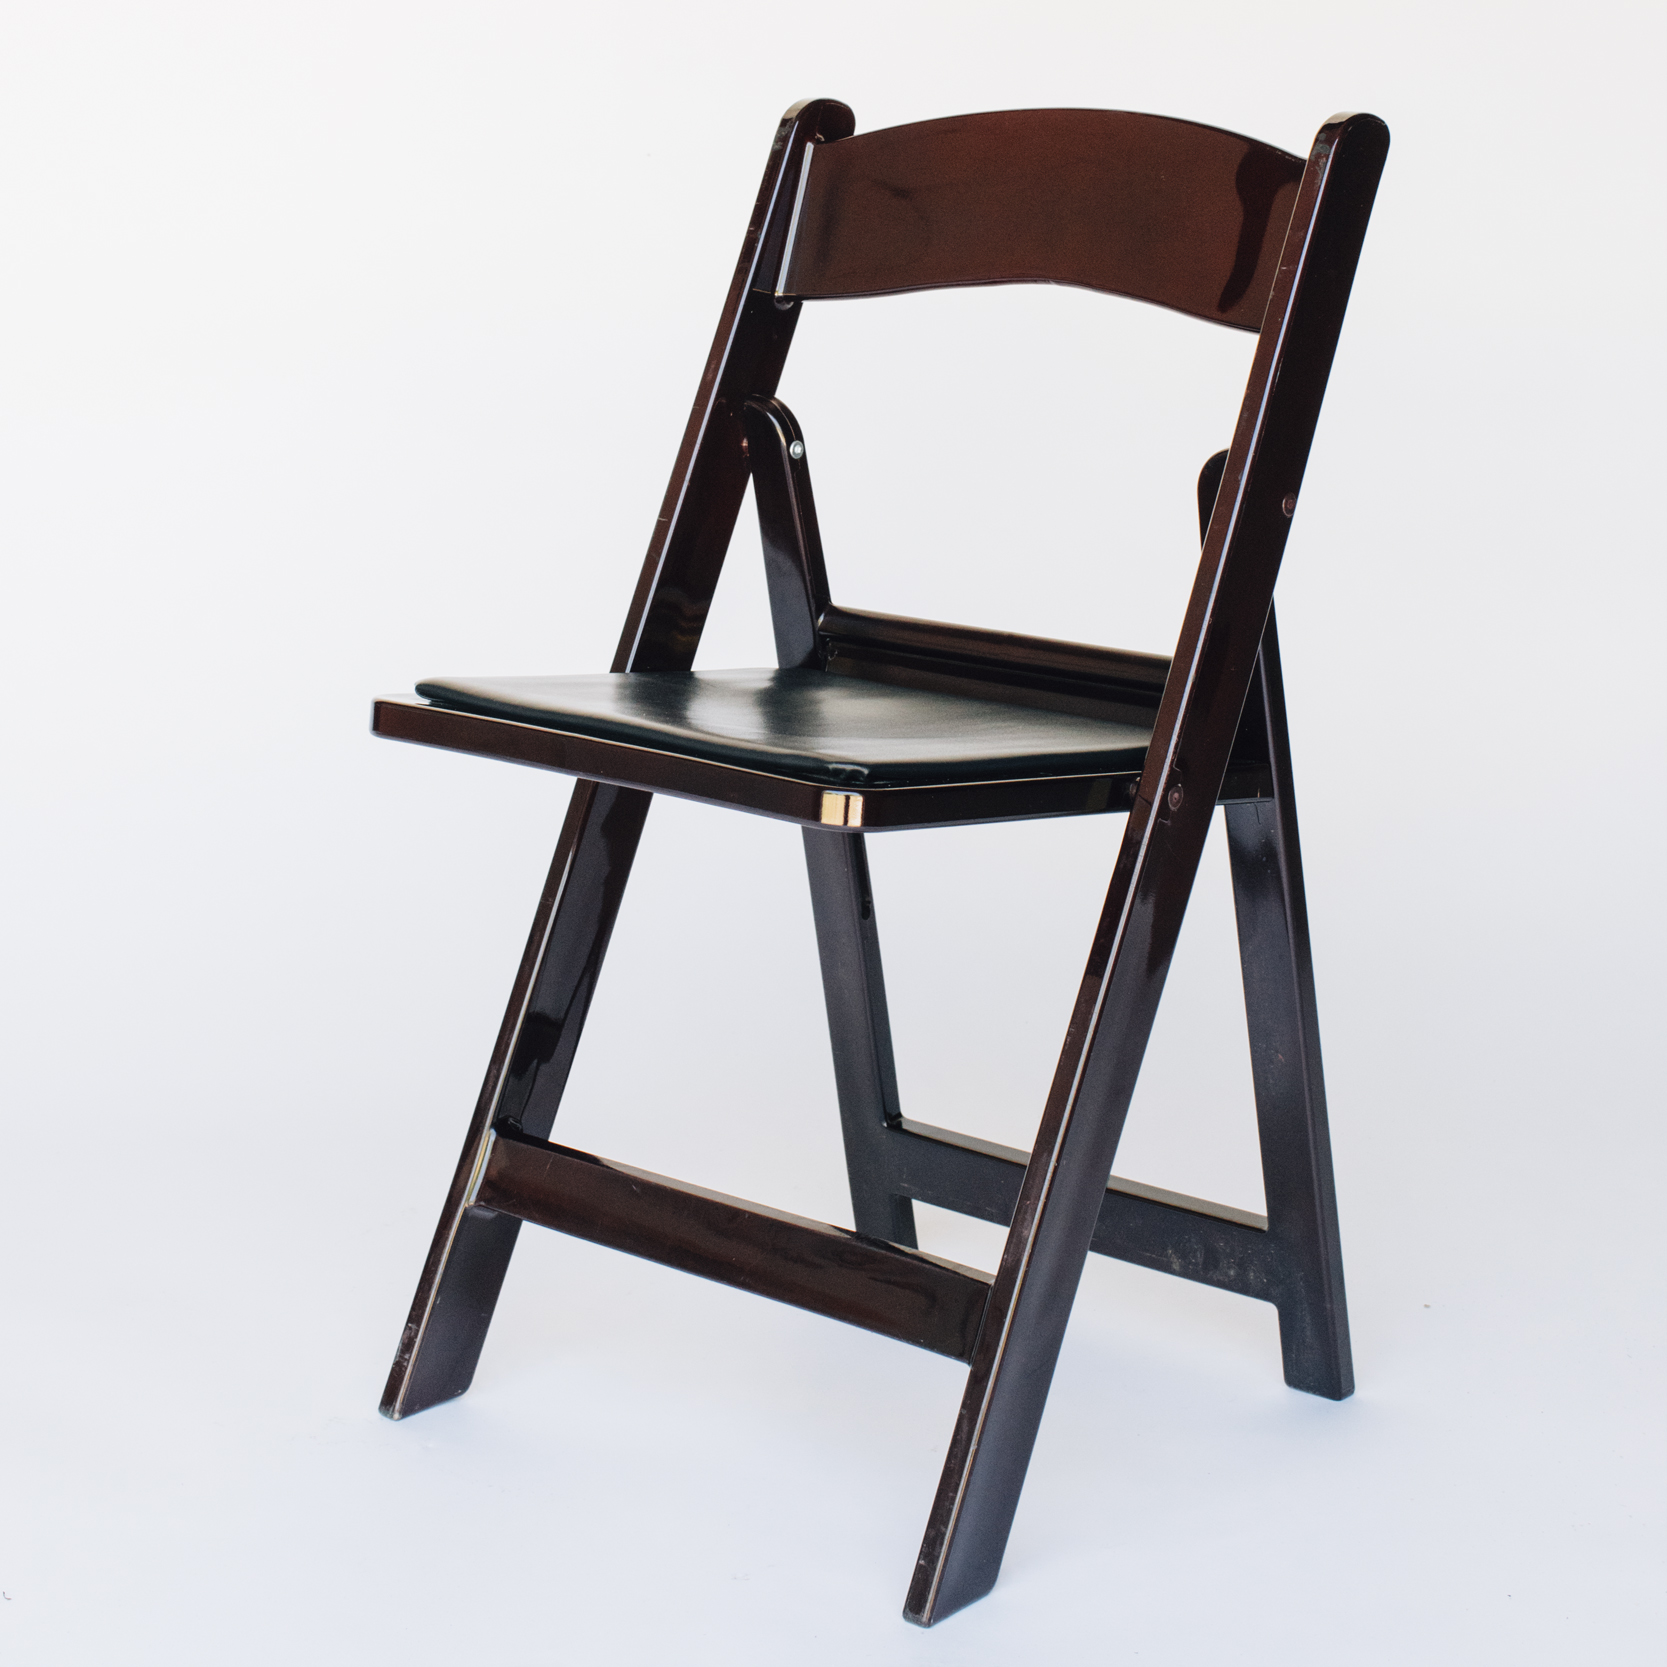 CHAIR_BROWN_1.jpg